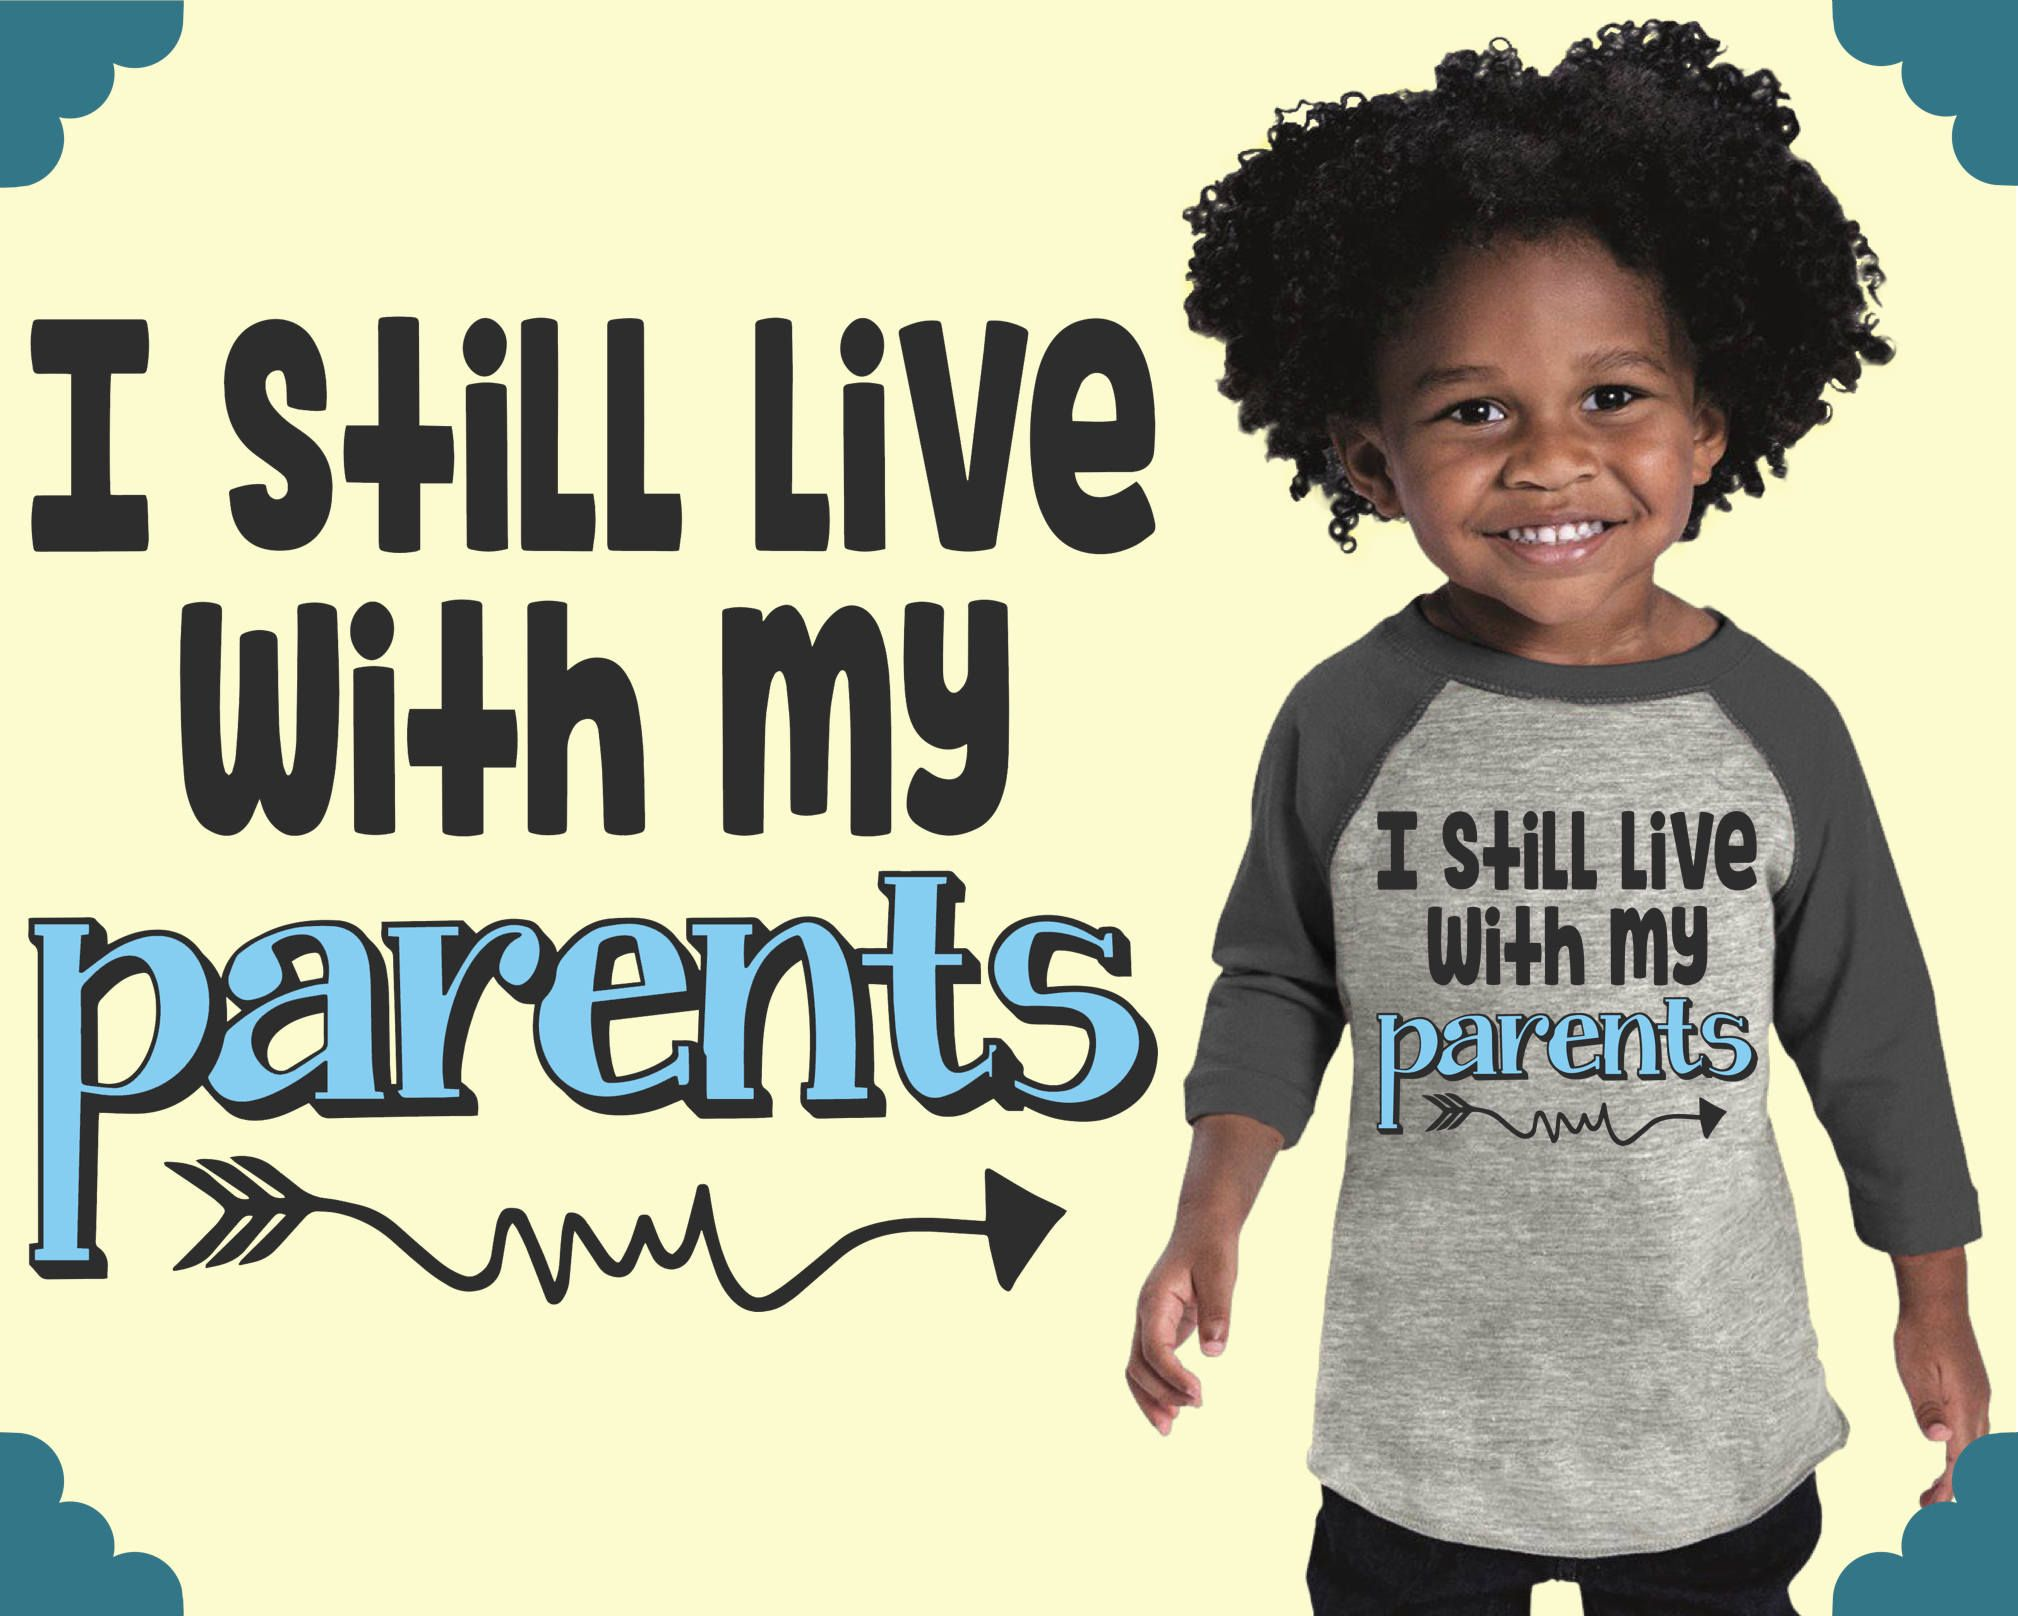 I still live with my parents boy clothes personalized baby i still live with my parents boy clothes personalized baby custom baby gift custom baby clothes kids tshirt teal blvd negle Gallery